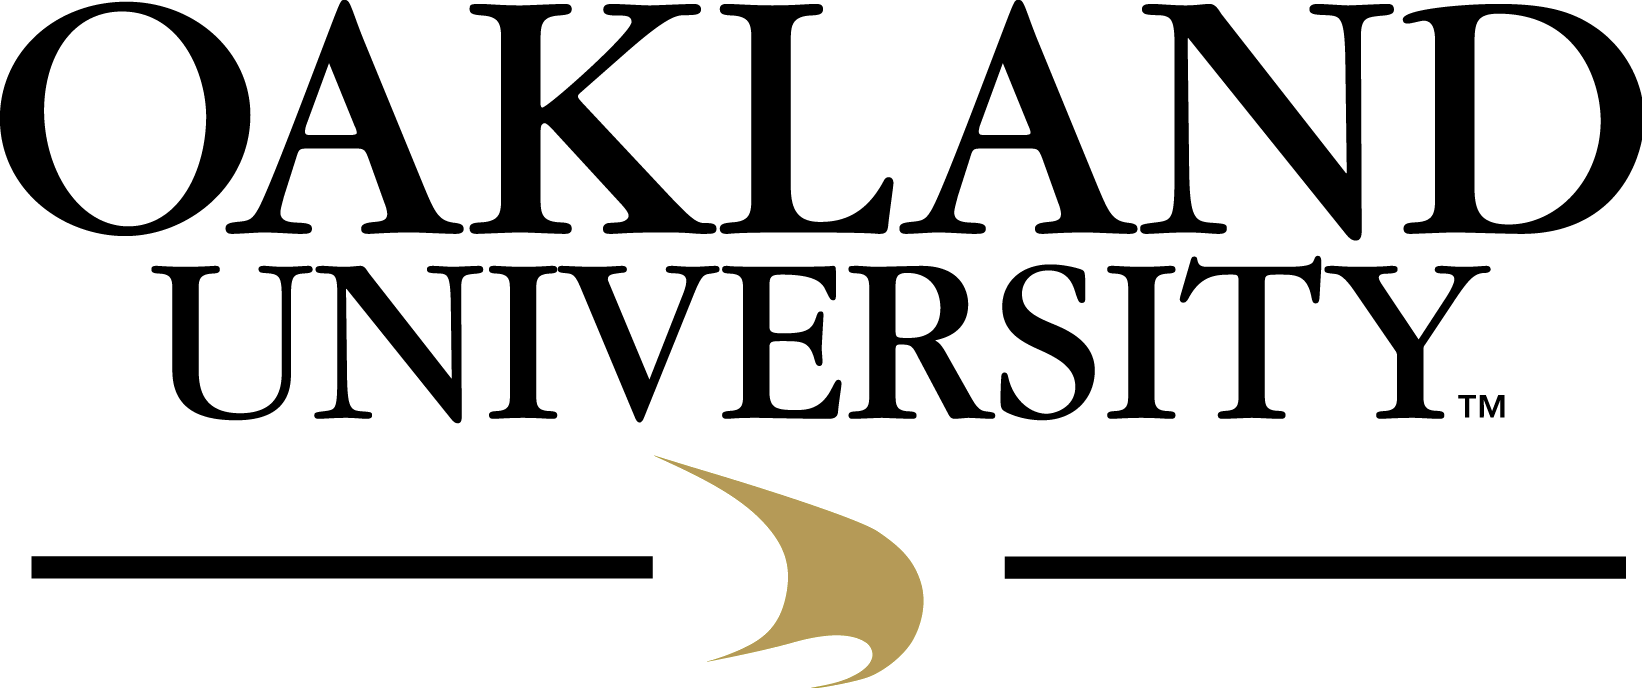 Oakland University Incubator (OU INC).png